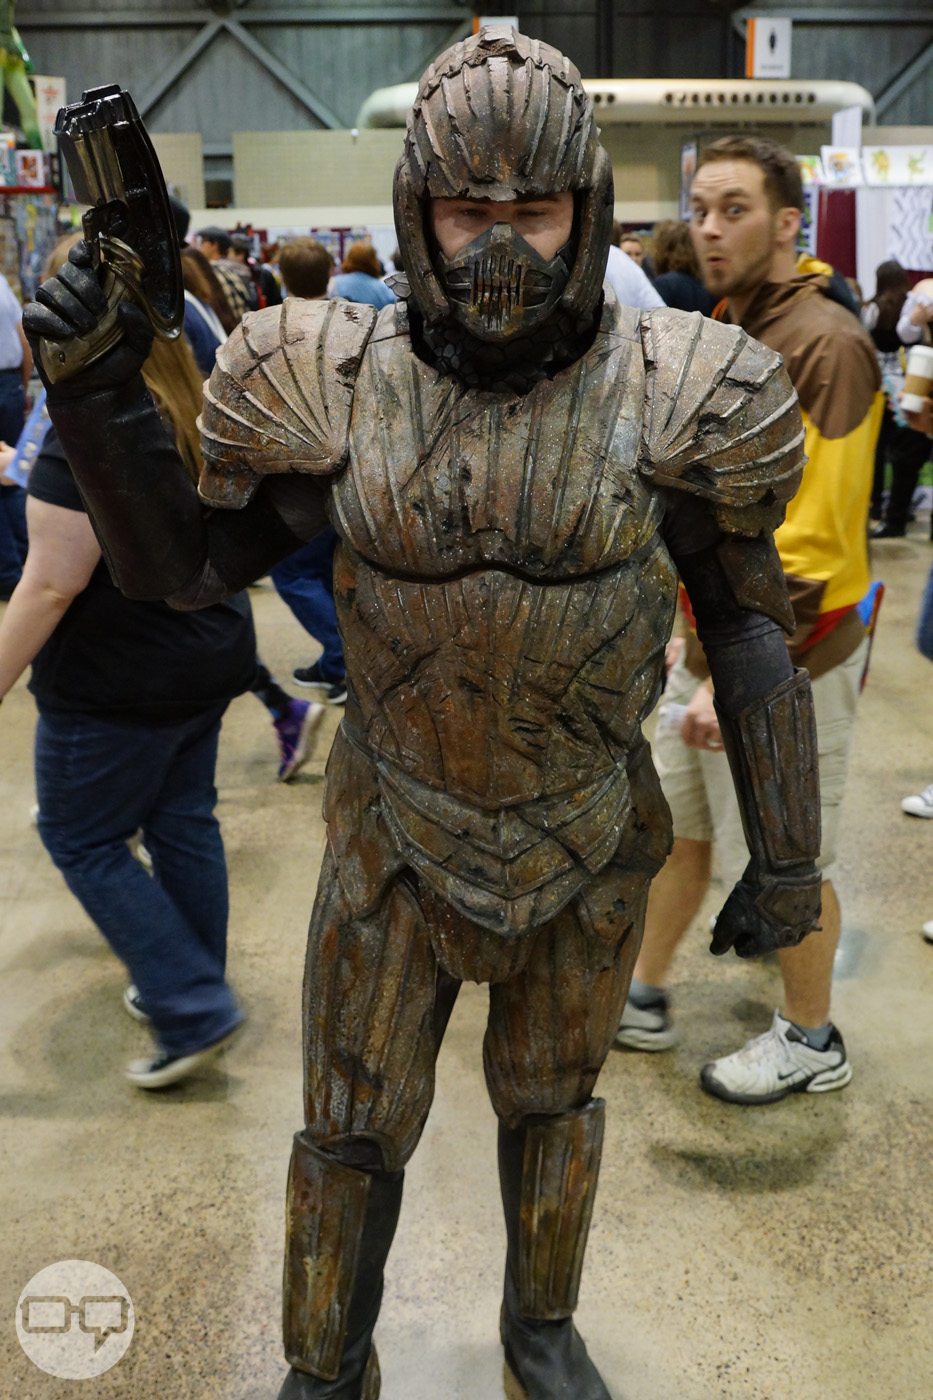 Planet-Comicon-2015-ProNerd-Cosplay-D1-9